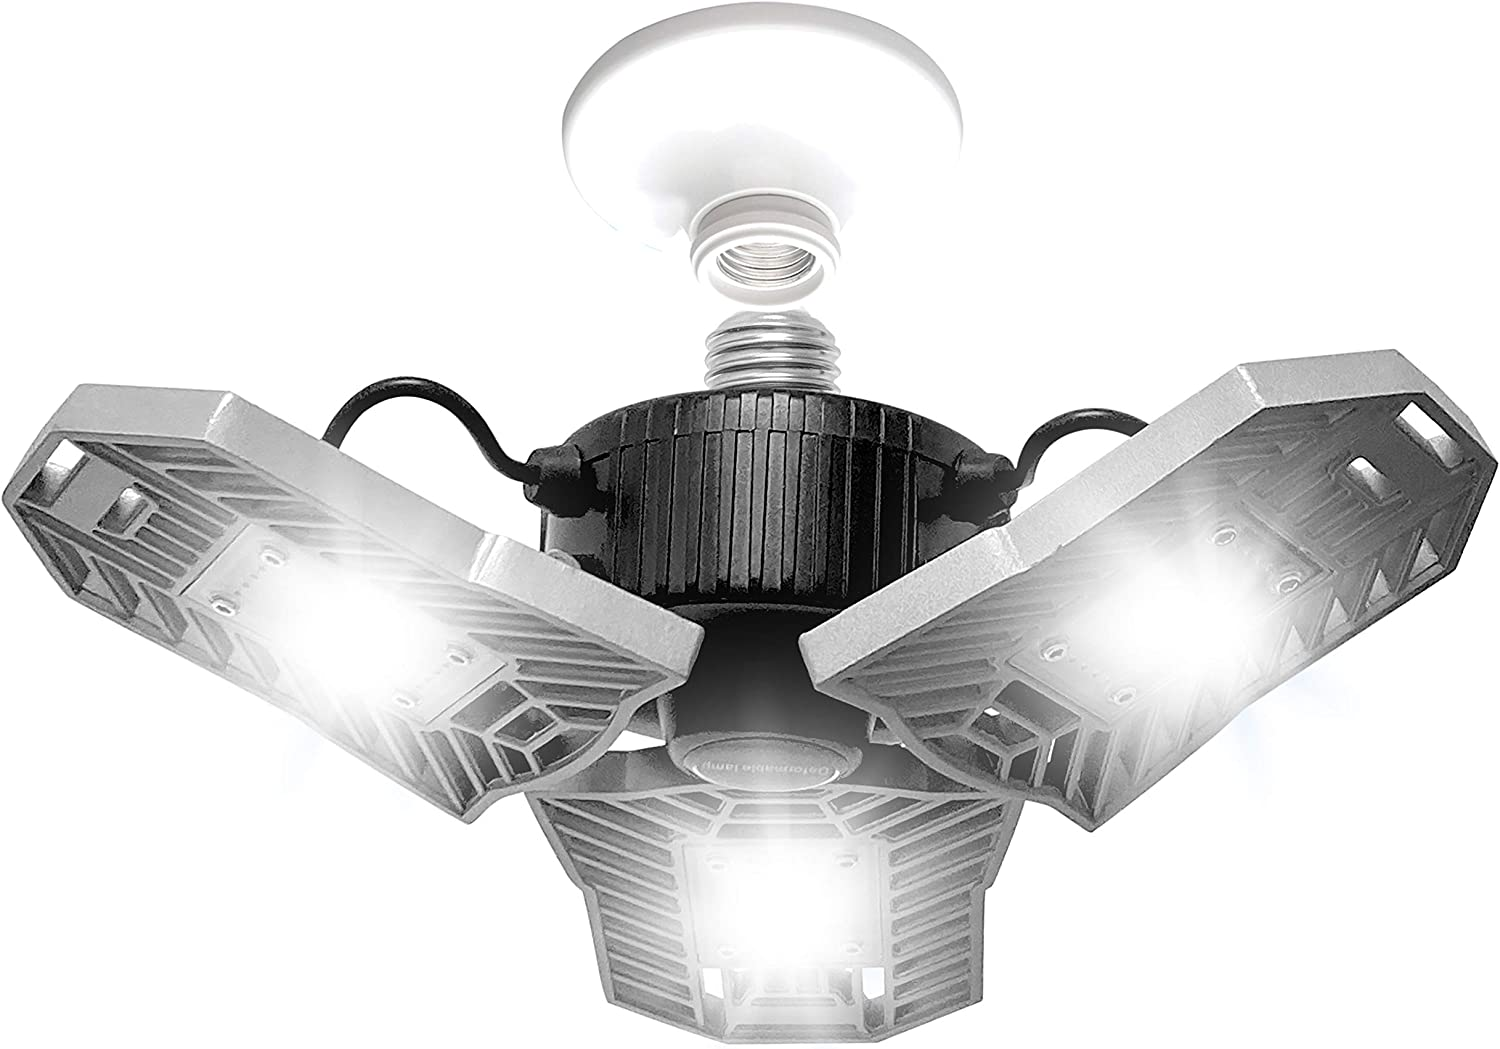 TRIBURST by Bell+Howell High Intensity Lighting with 144 LED Bulb, Multi-Directional Triple Panel Light for Indoor and Outdoor, As Seen On TV (Original)